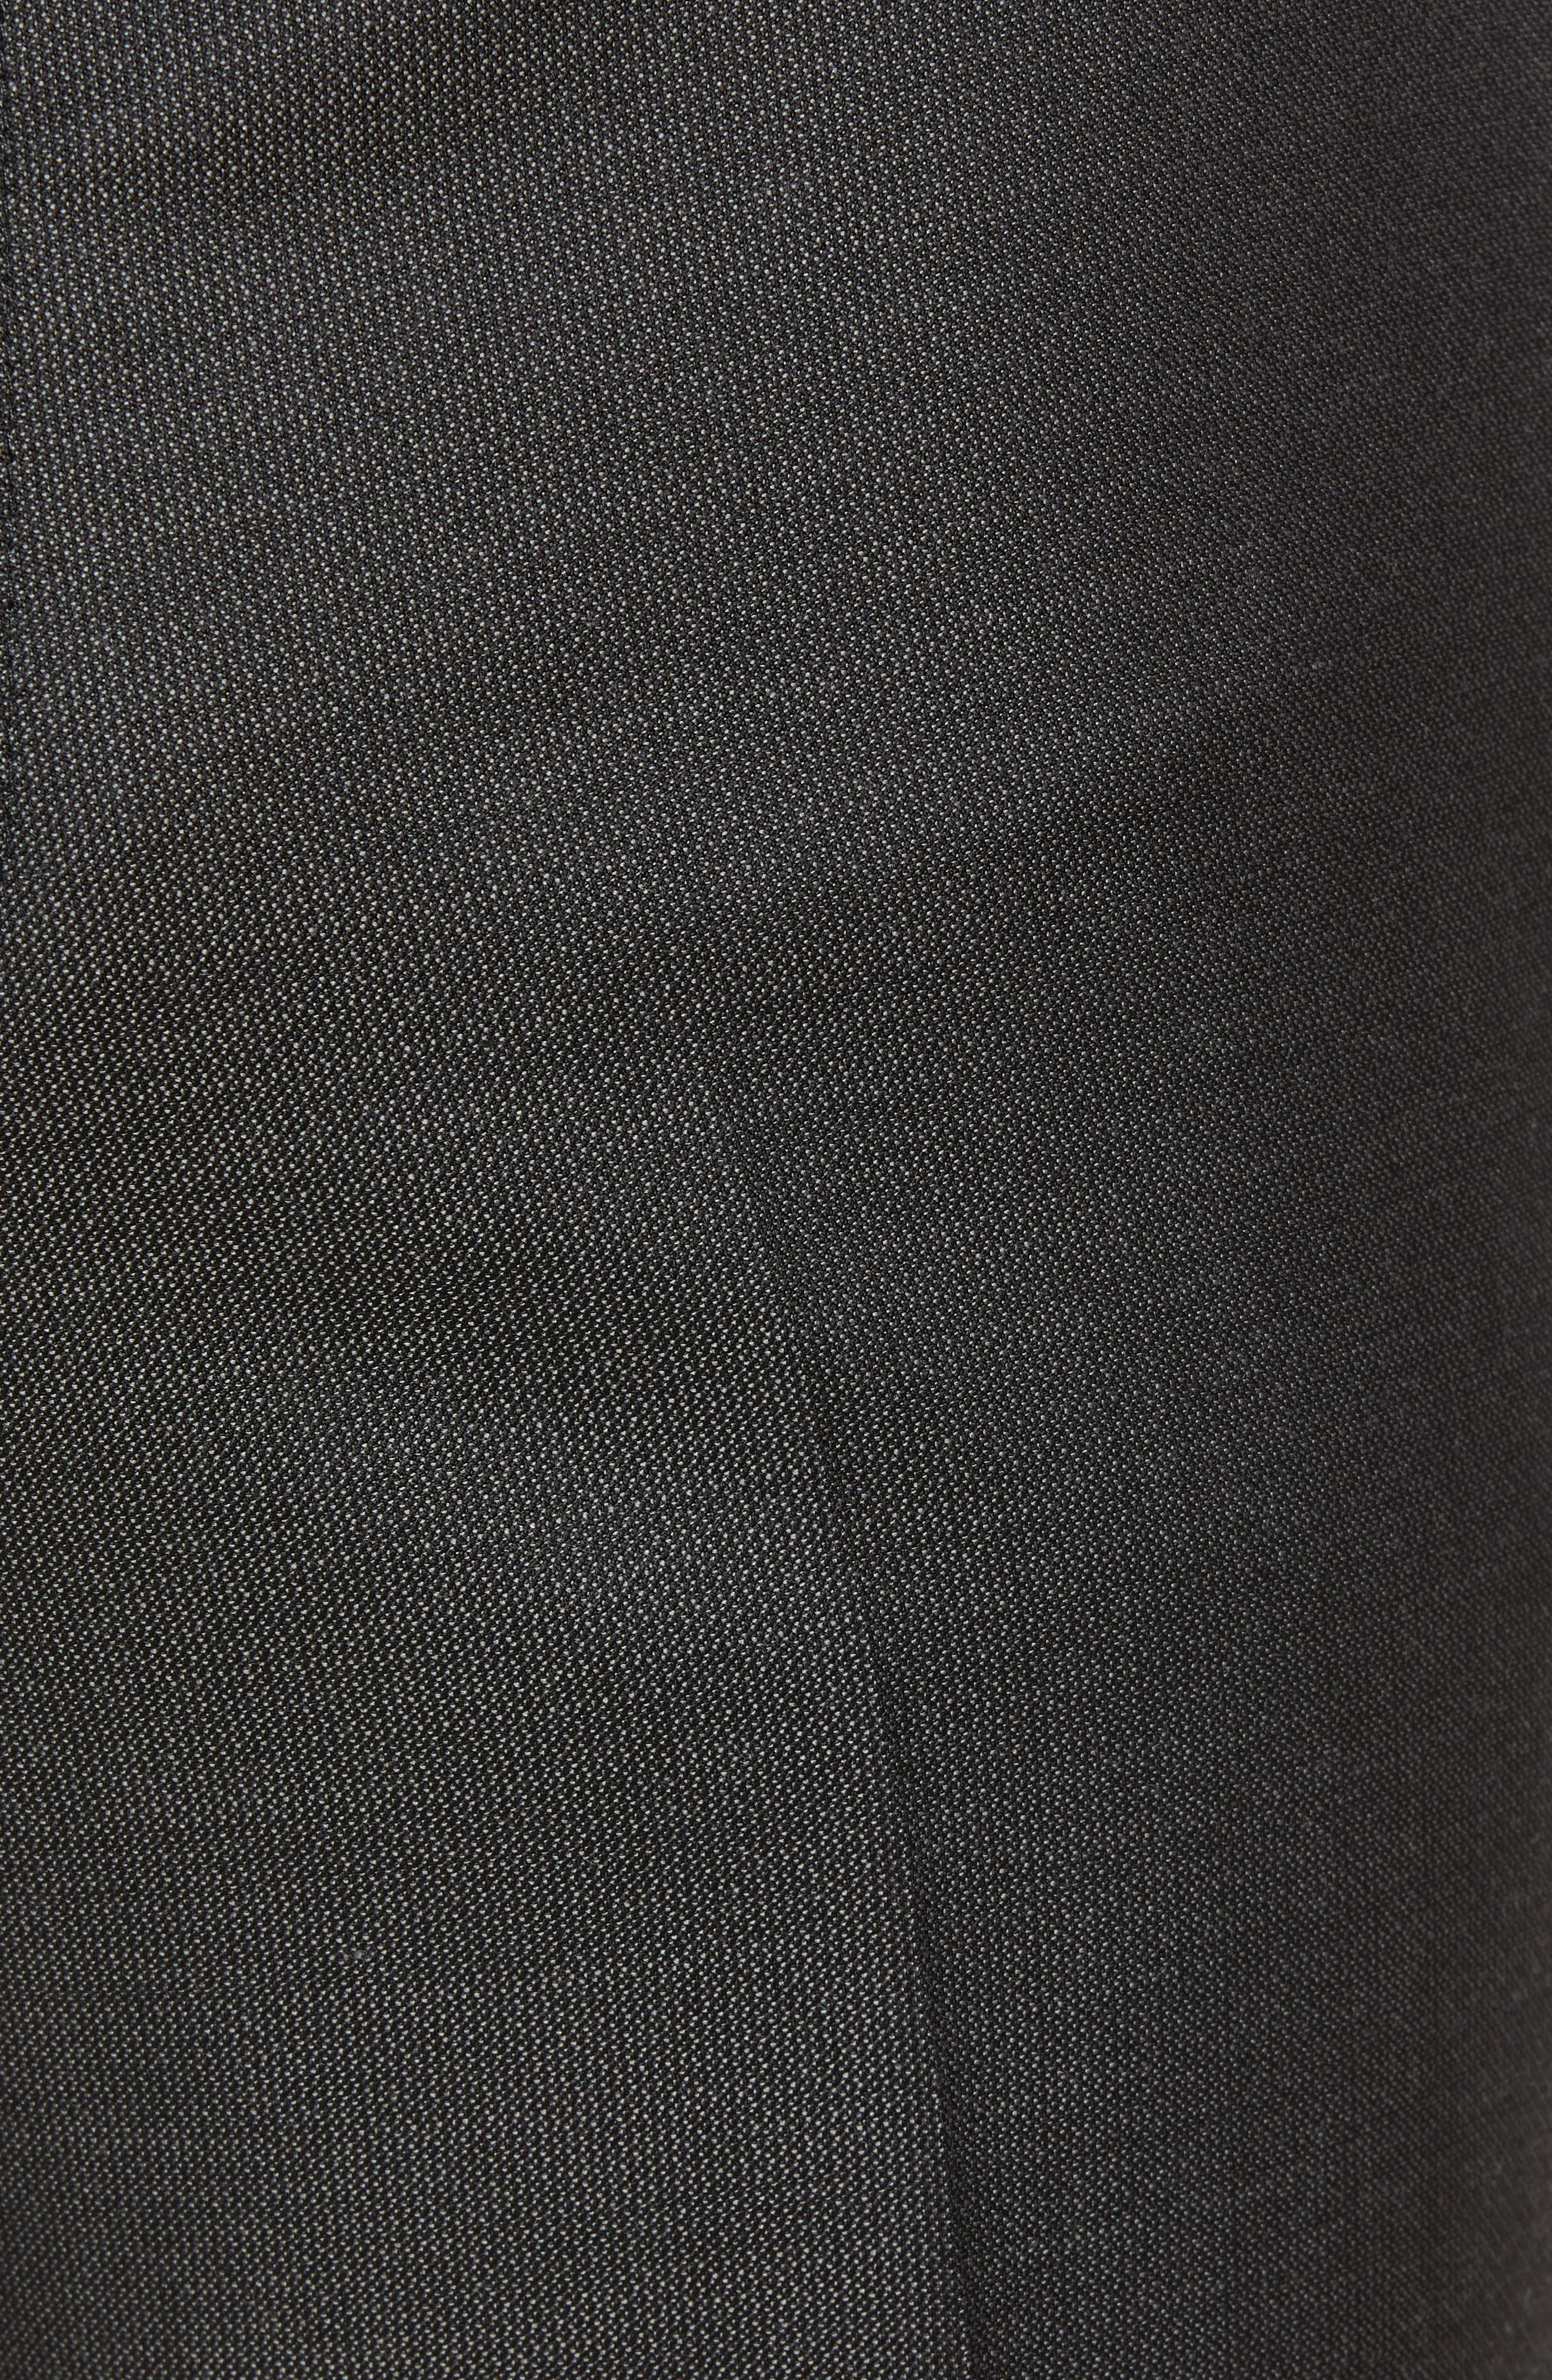 Torino Traditional Fit Flat Front Solid Wool Trousers,                             Alternate thumbnail 5, color,                             BLACK